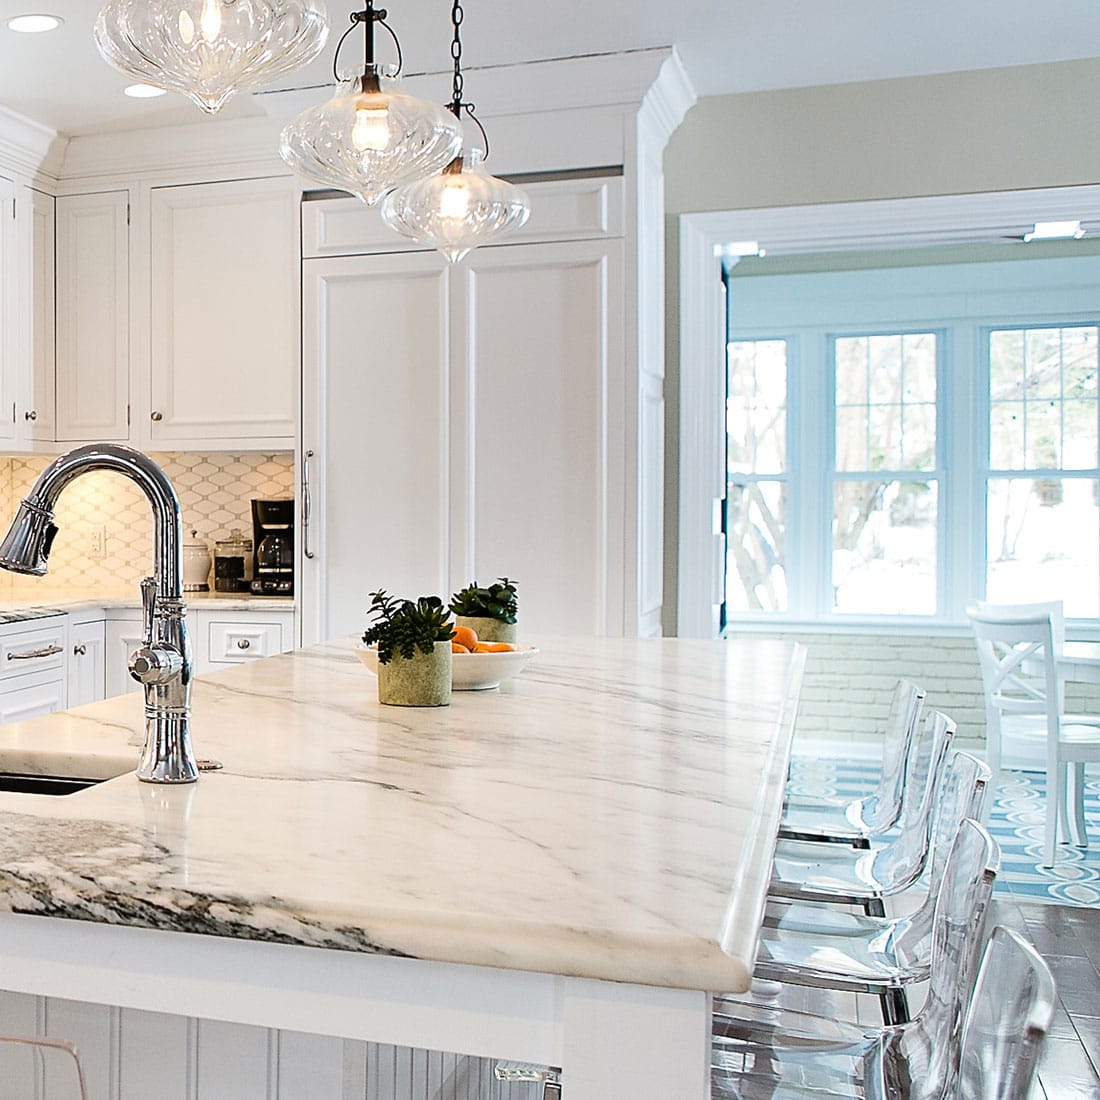 White marble counter with view of bright sunroom